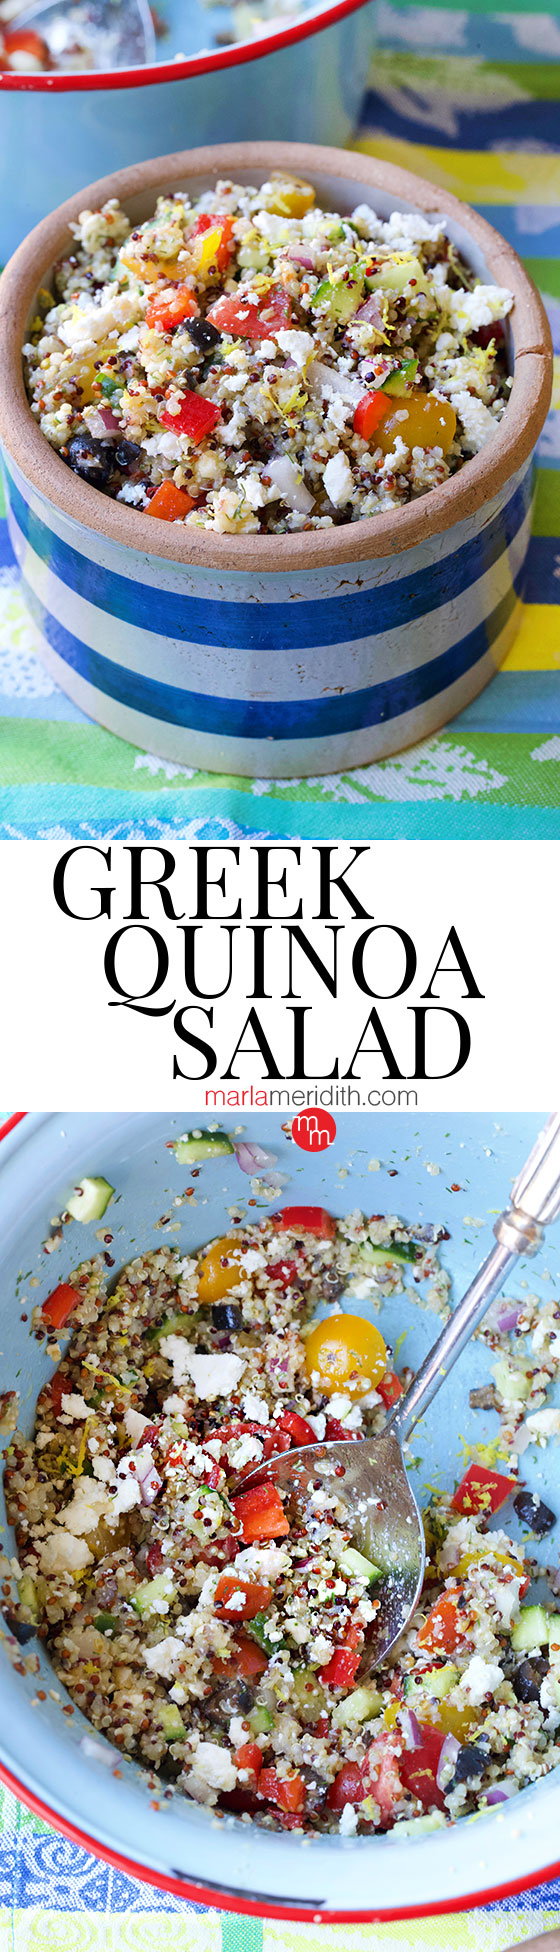 Serve this delicious Greek Quinoa Salad as a side or main. Add chickpeas, chicken, steak or salmon for a heartier entree. Get the recipe on MarlaMeridith.com